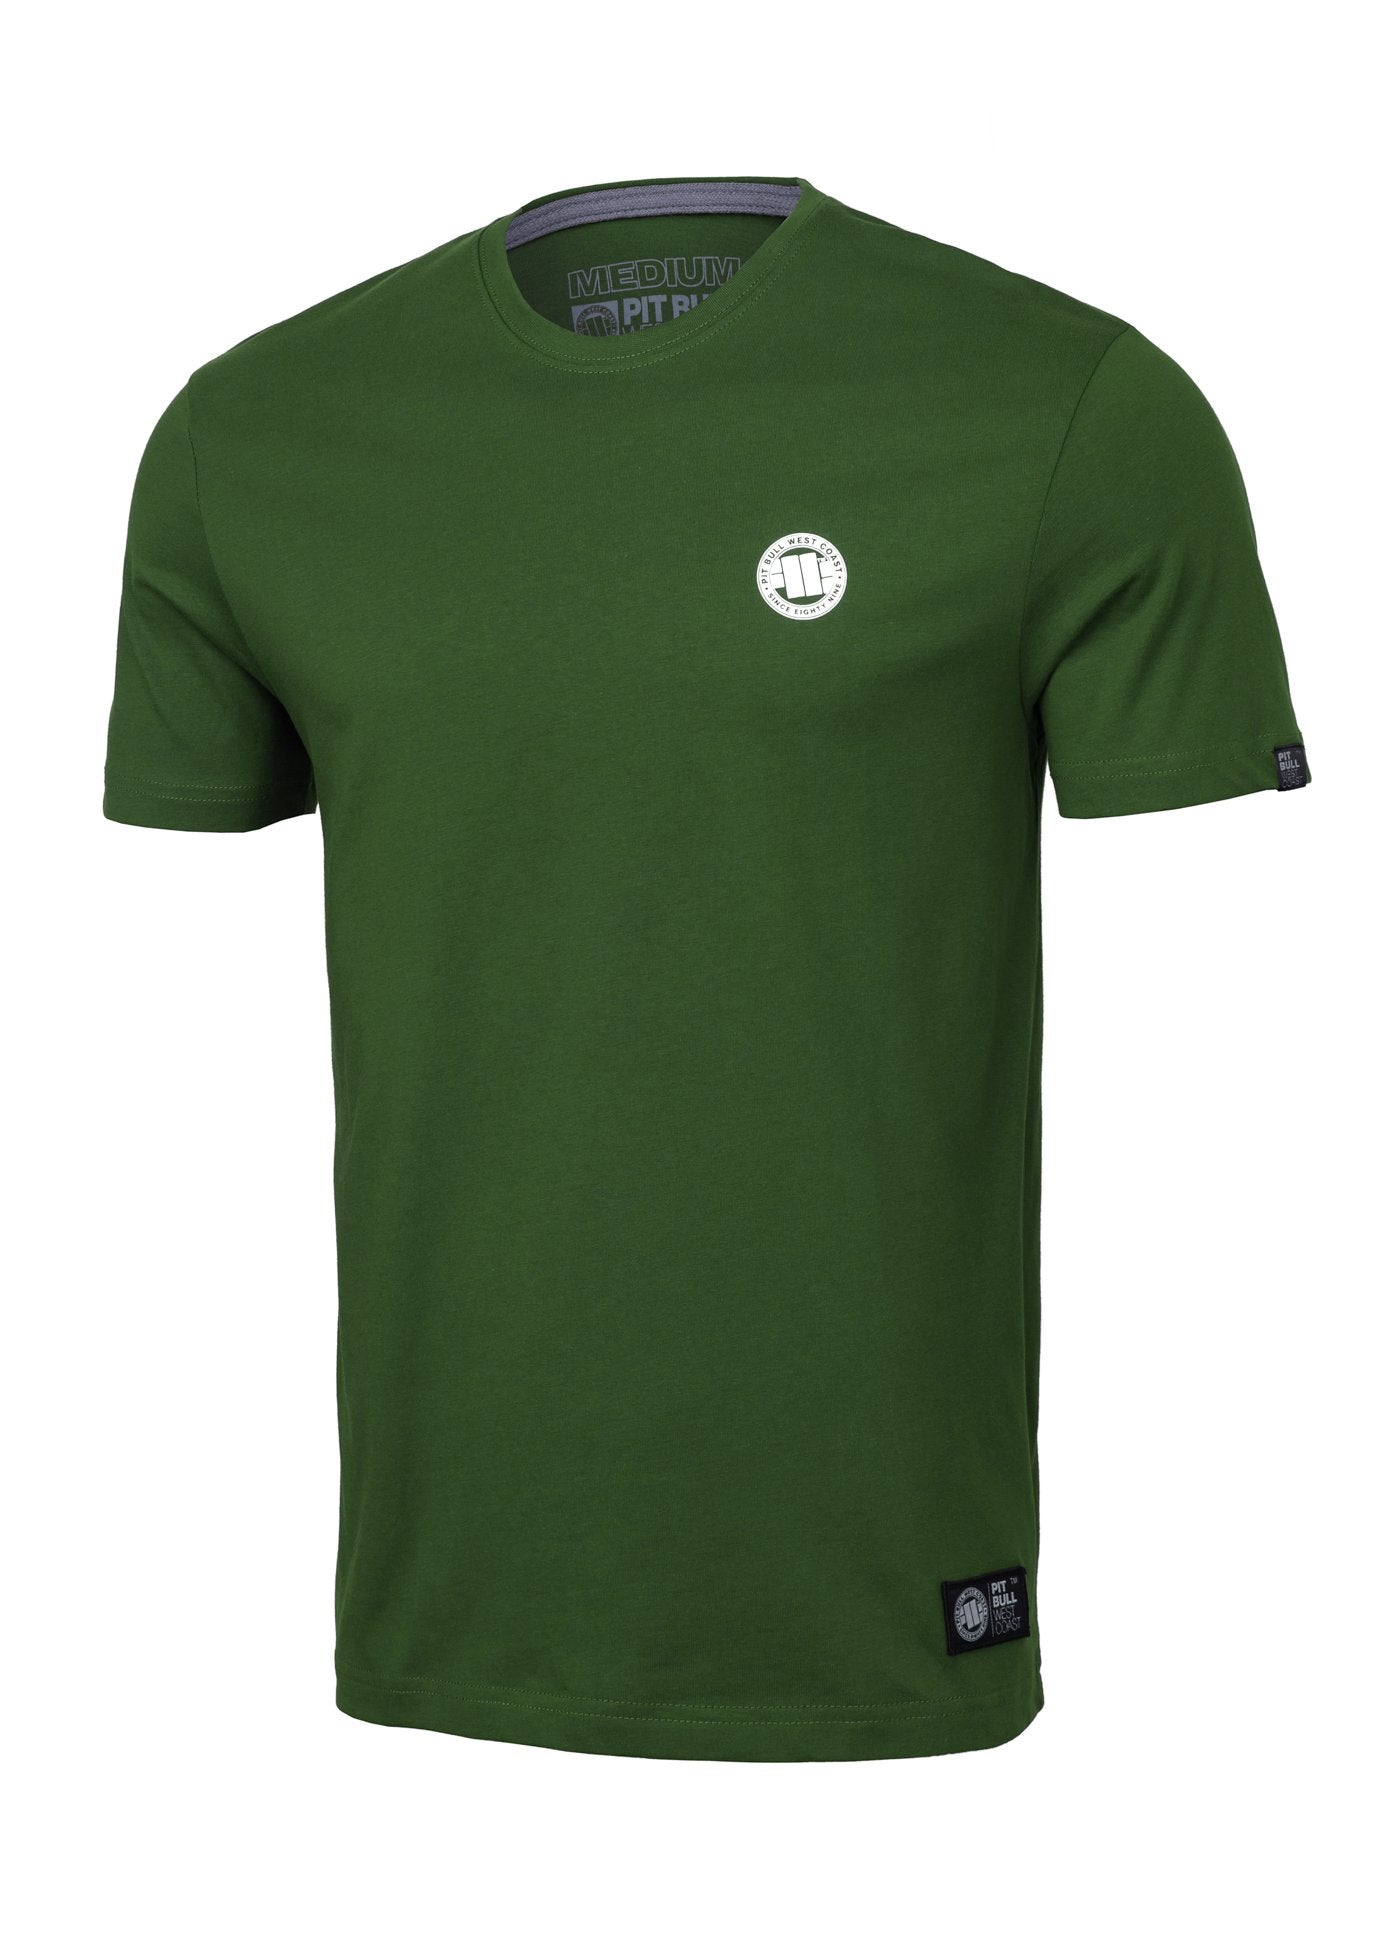 T-Shirt SMALL LOGO Green - Pitbull West Coast U.S.A.